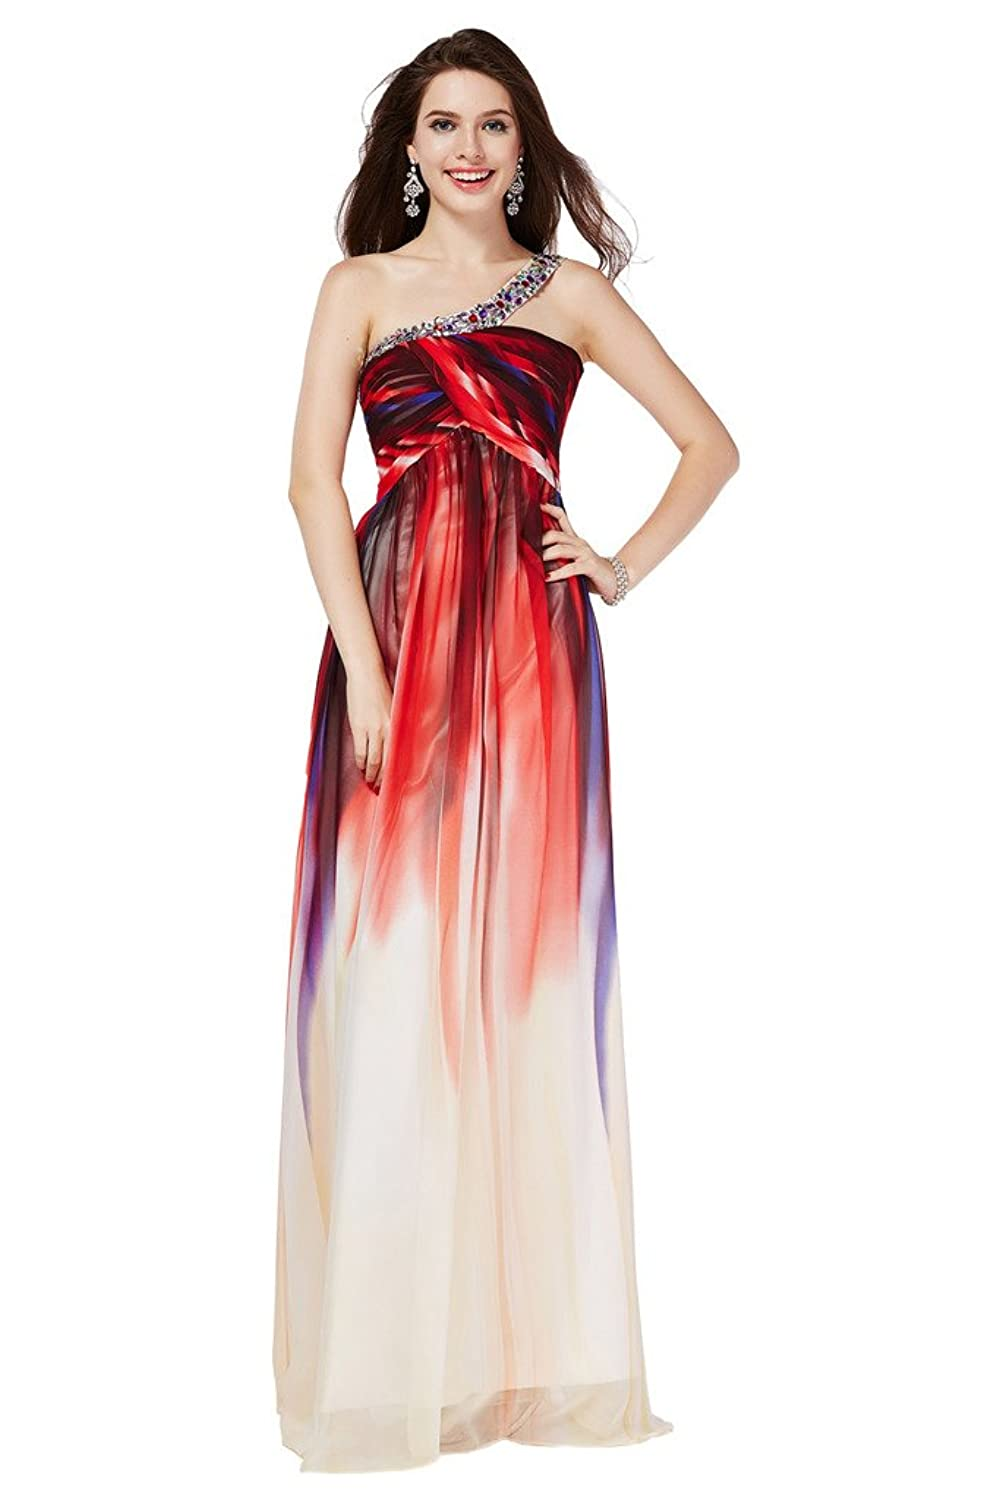 Gorgeous Bride Floral Printing Chiffon Evening Party Dresses Long Chic Prom Gown